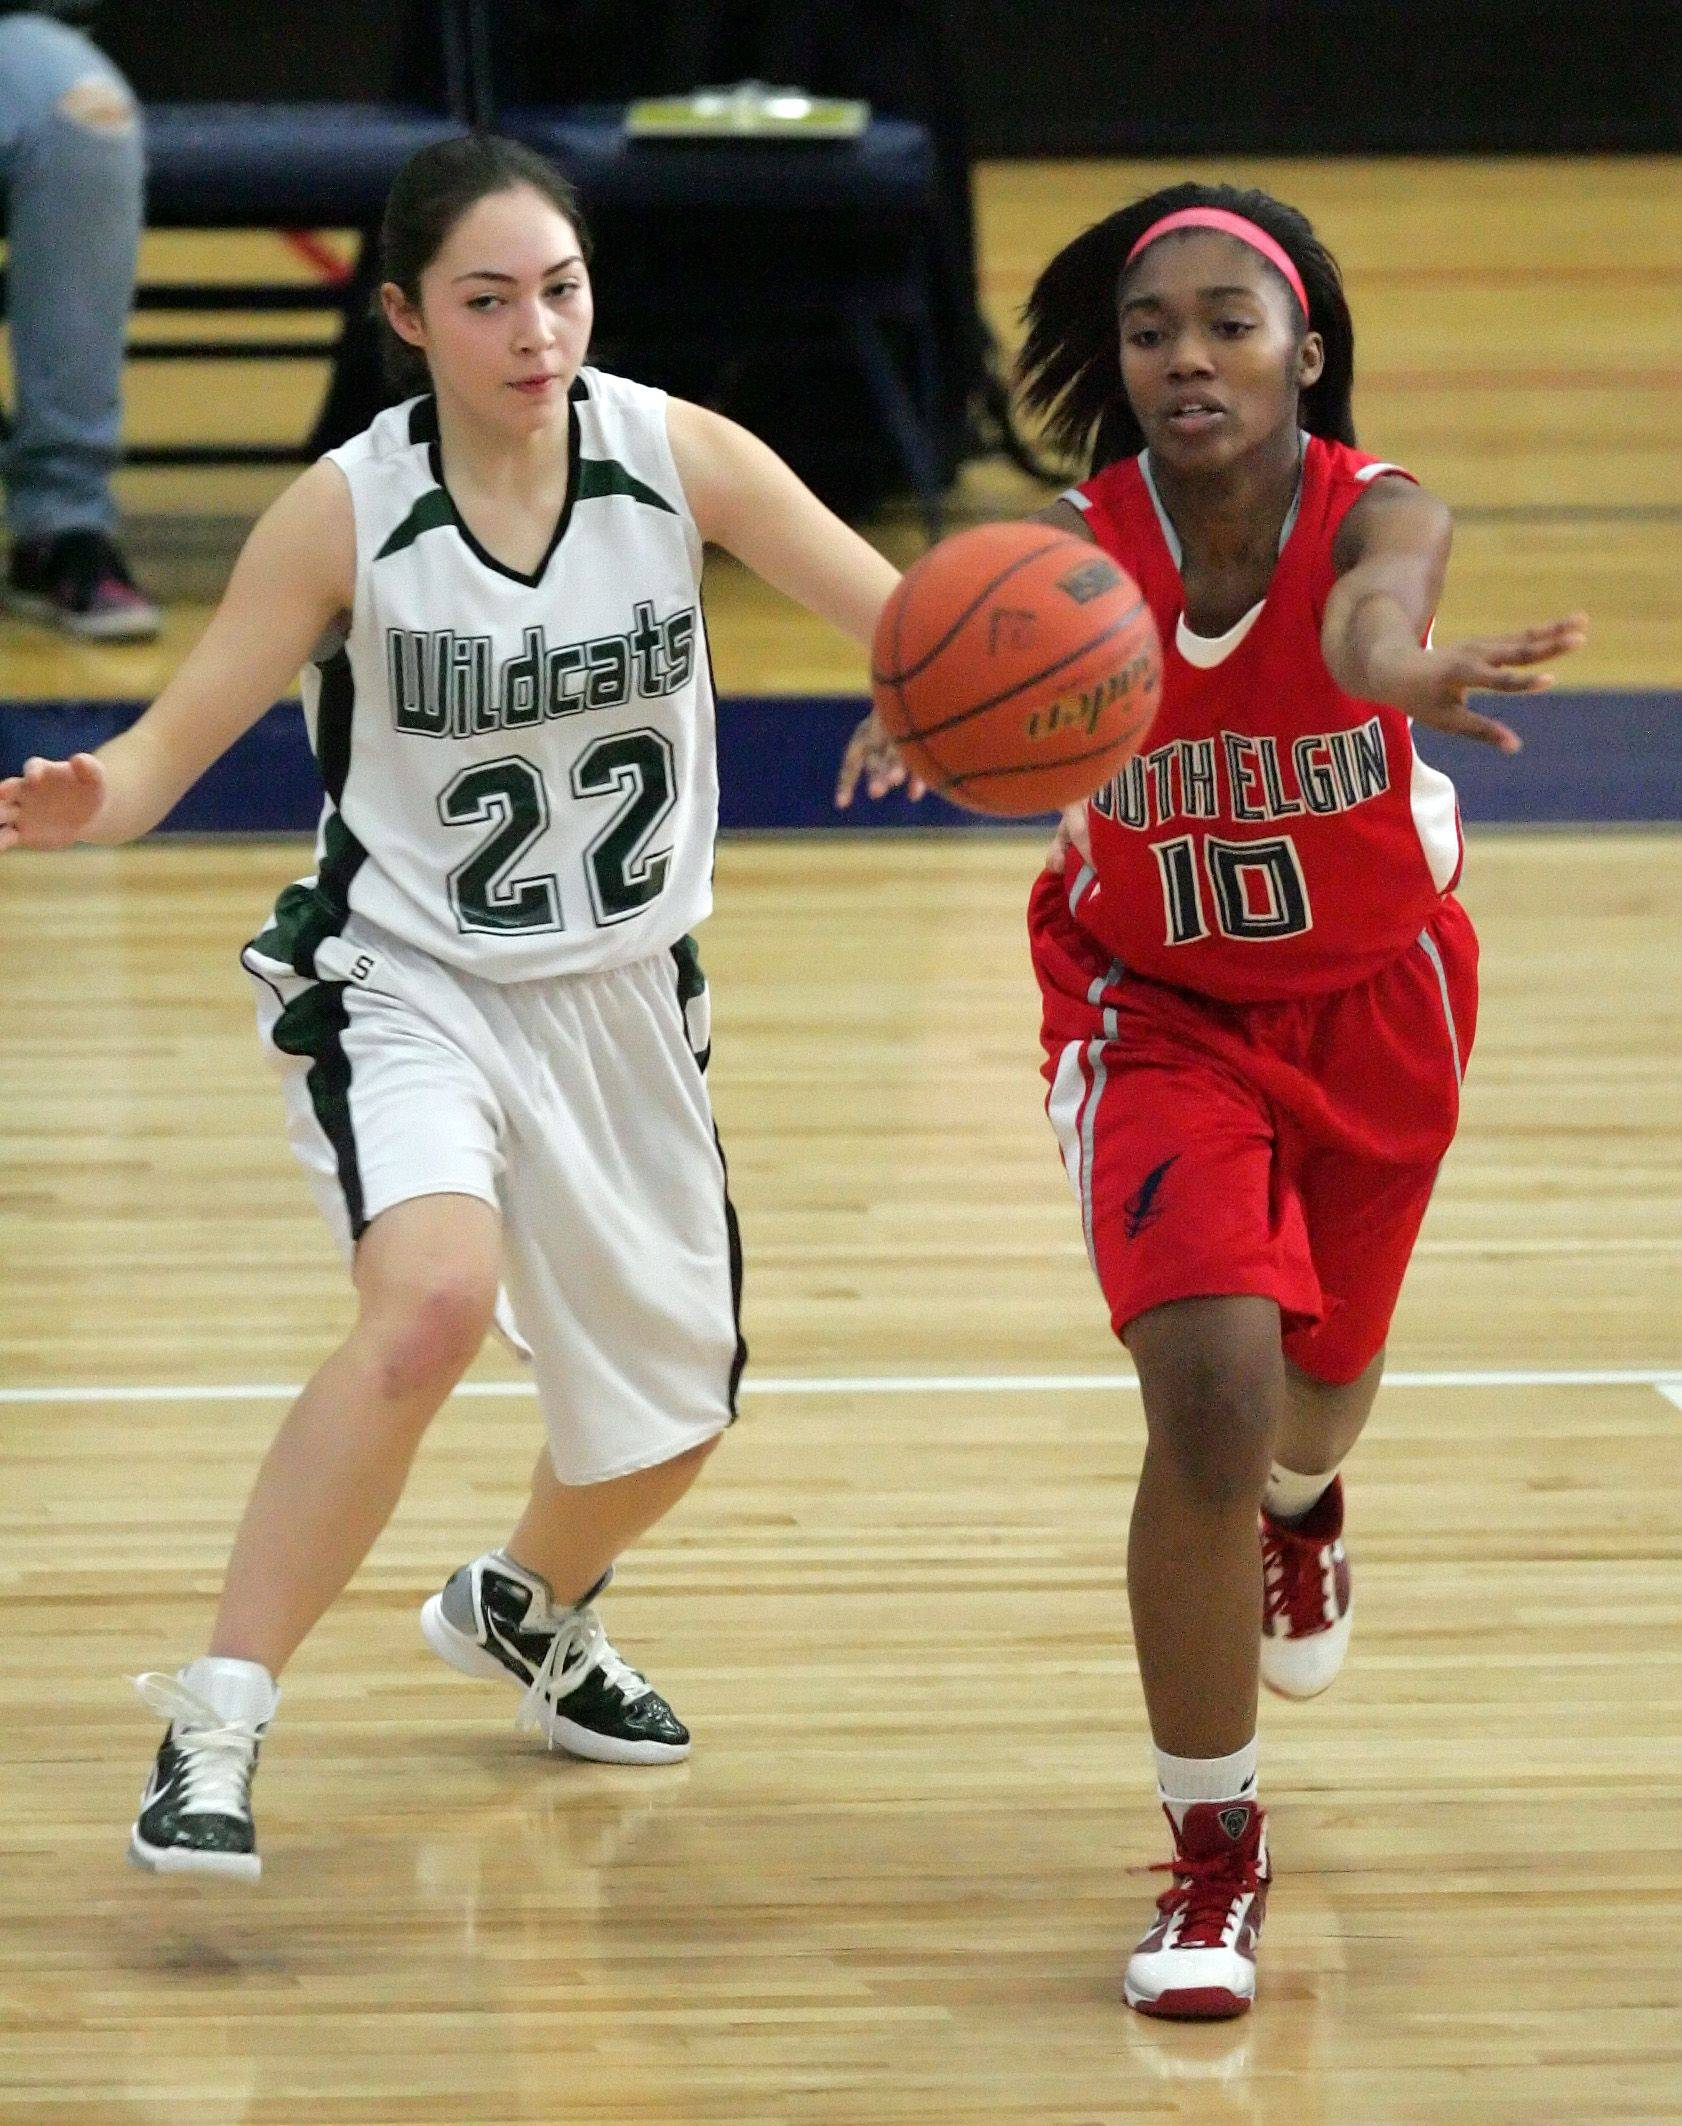 South Elgin's Andriella Patterson lets go of a pass against Plainfield Central Tuesday at the Oswego East tournament.